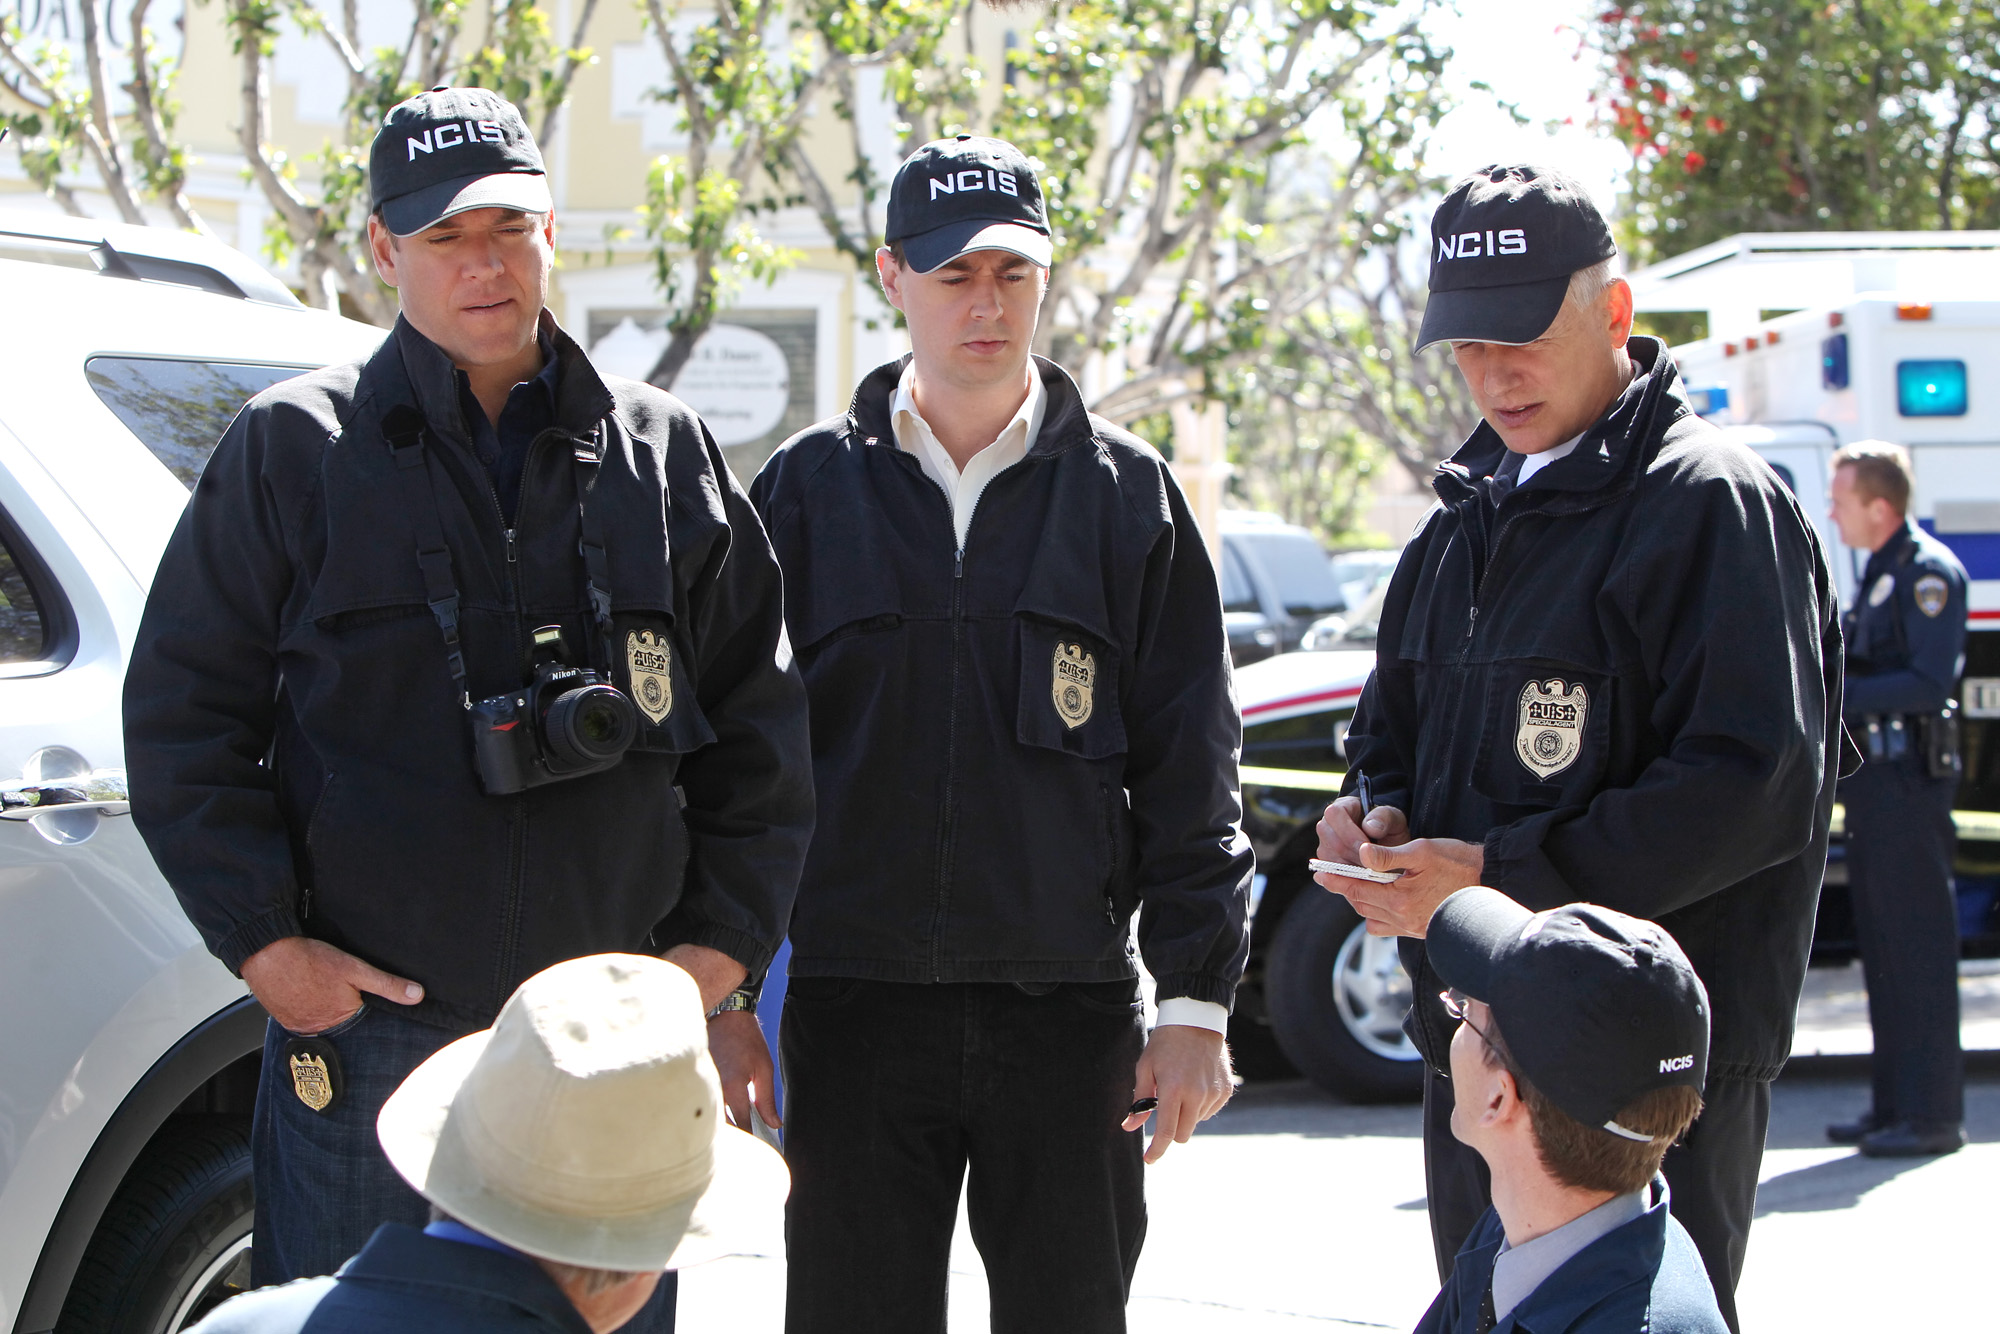 Season 11 Episode 21 Photos - NCIS